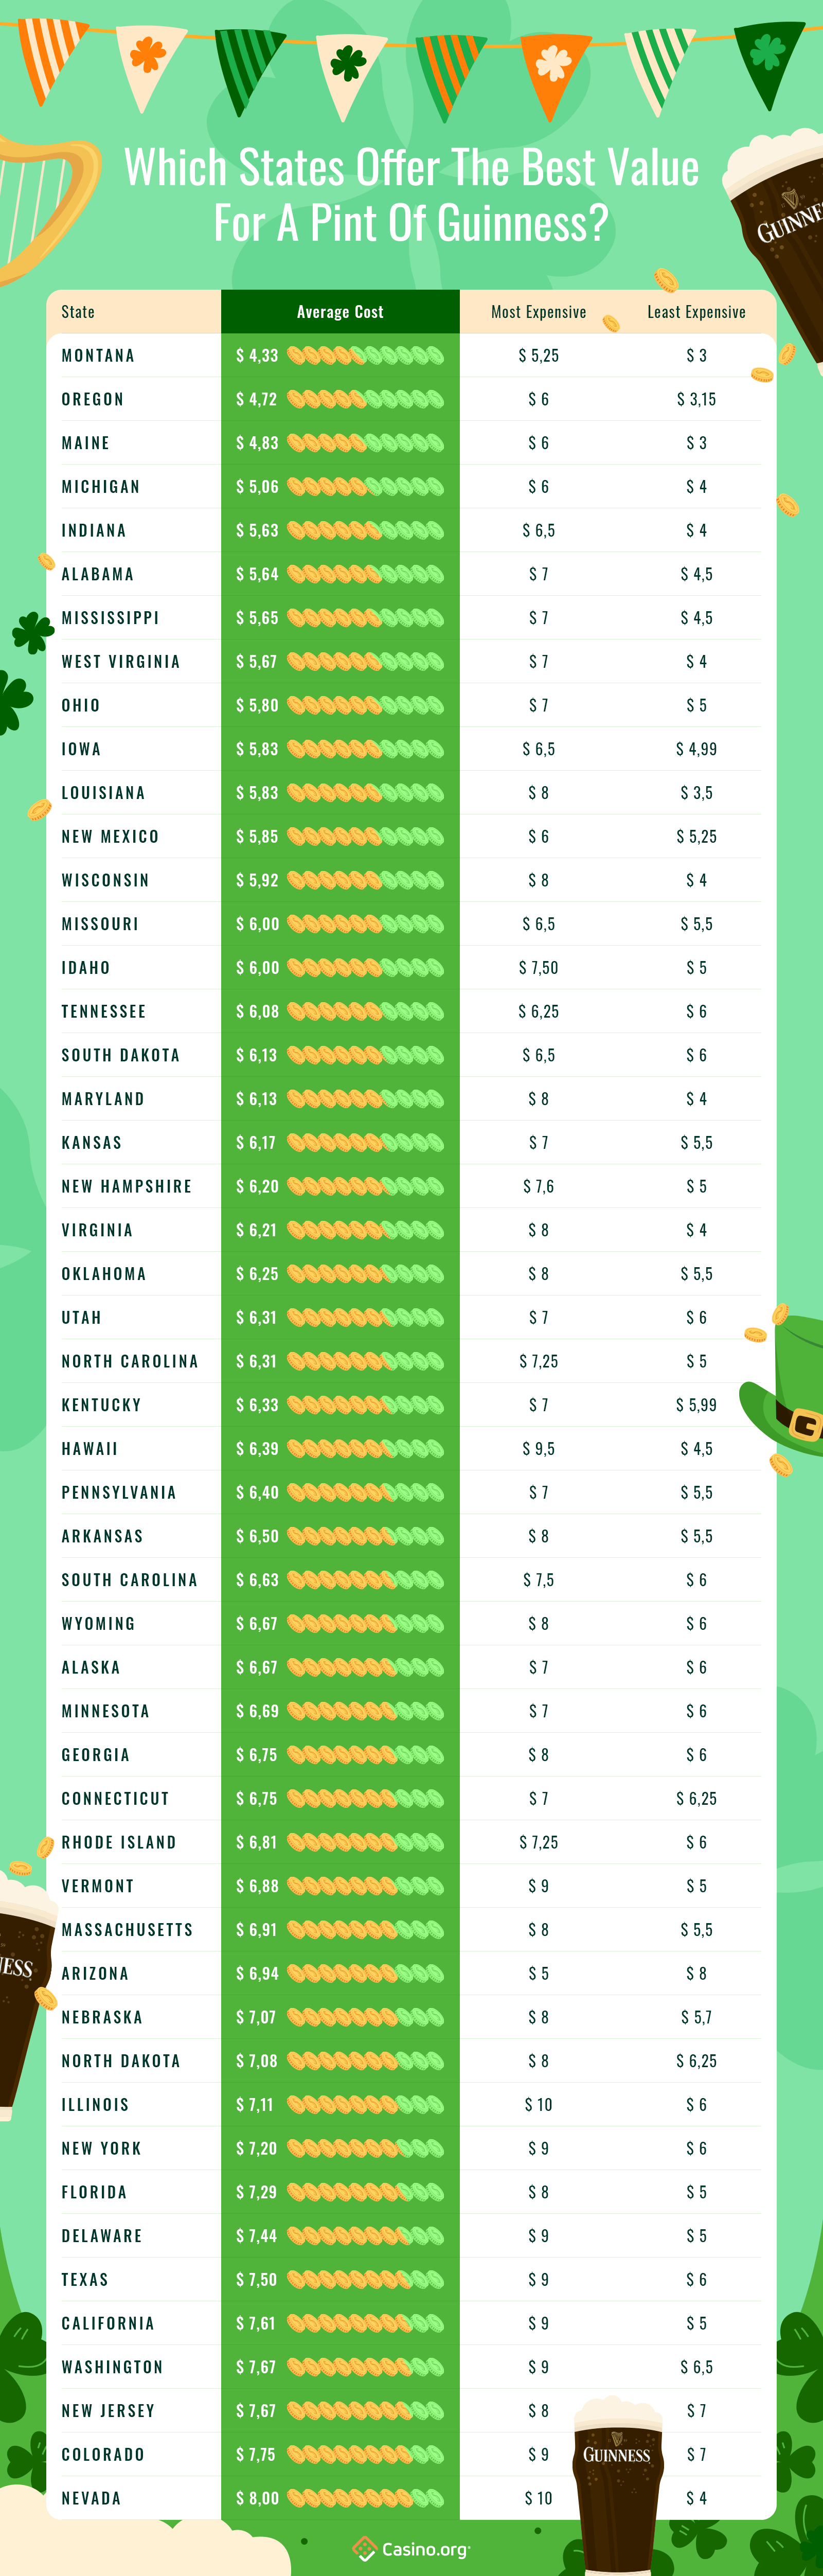 Infographic showing the most and least expensive pint of guinness in every state